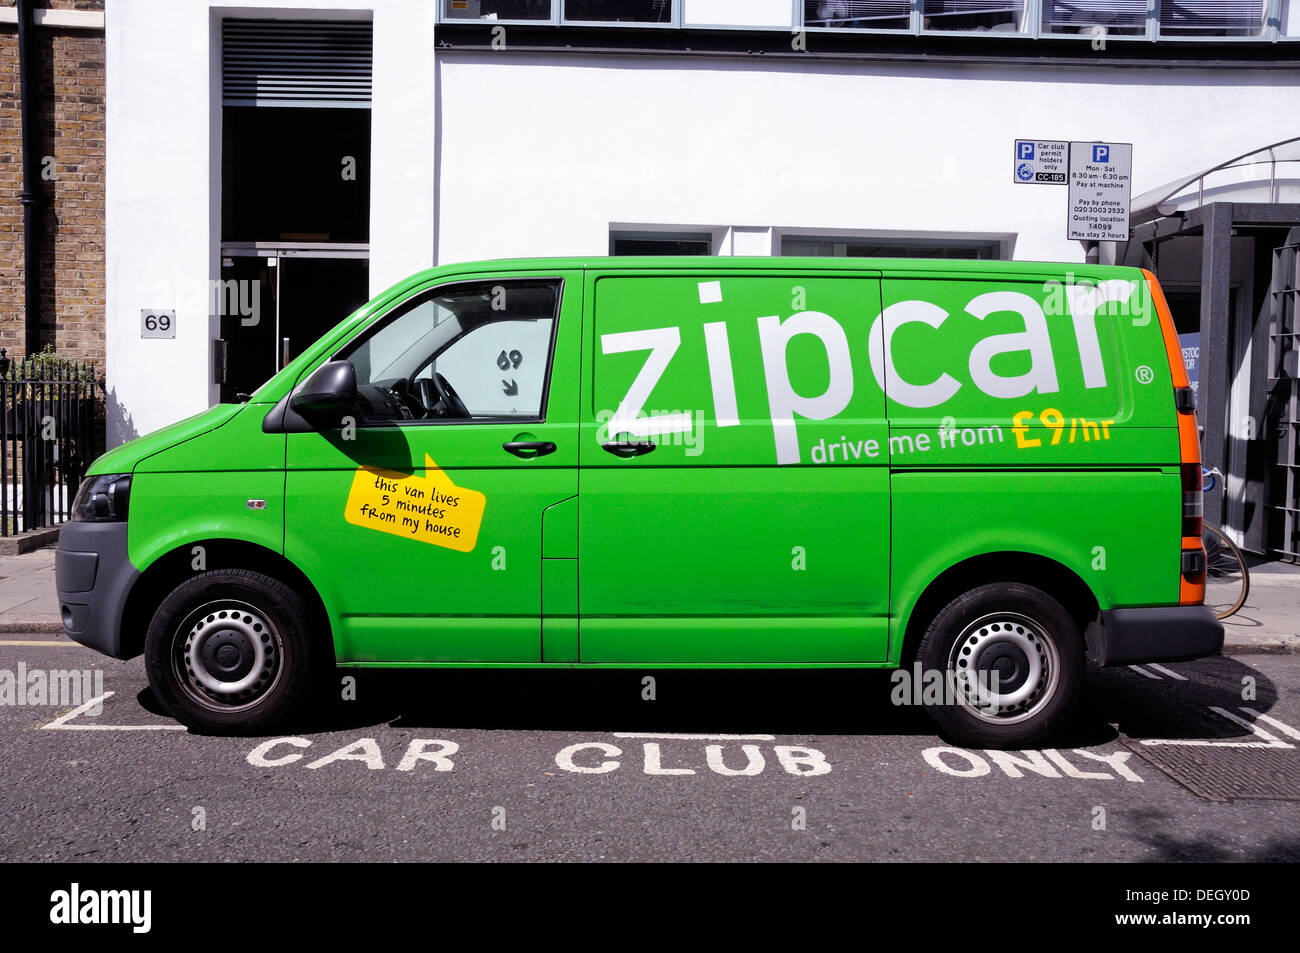 Green Zipcar Van parked in car club parking bay, Central London, England, UK - Stock Image